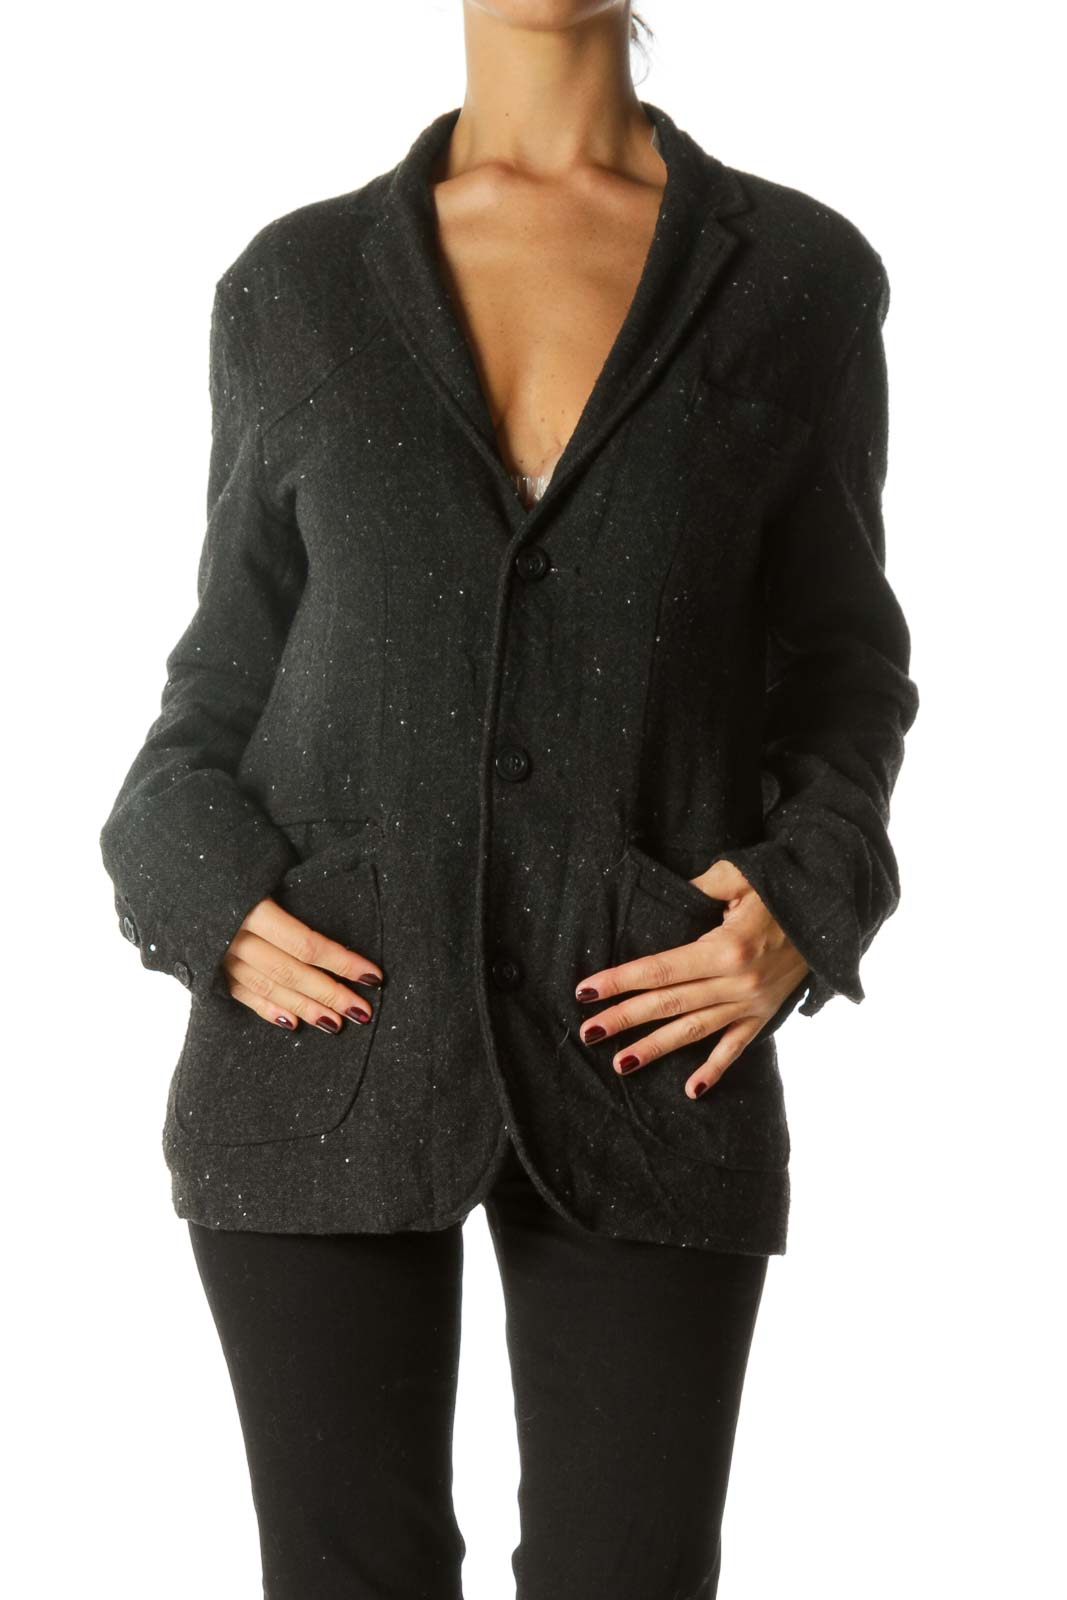 Dark Gray White Knit Collared Pocketed Lined Jacket